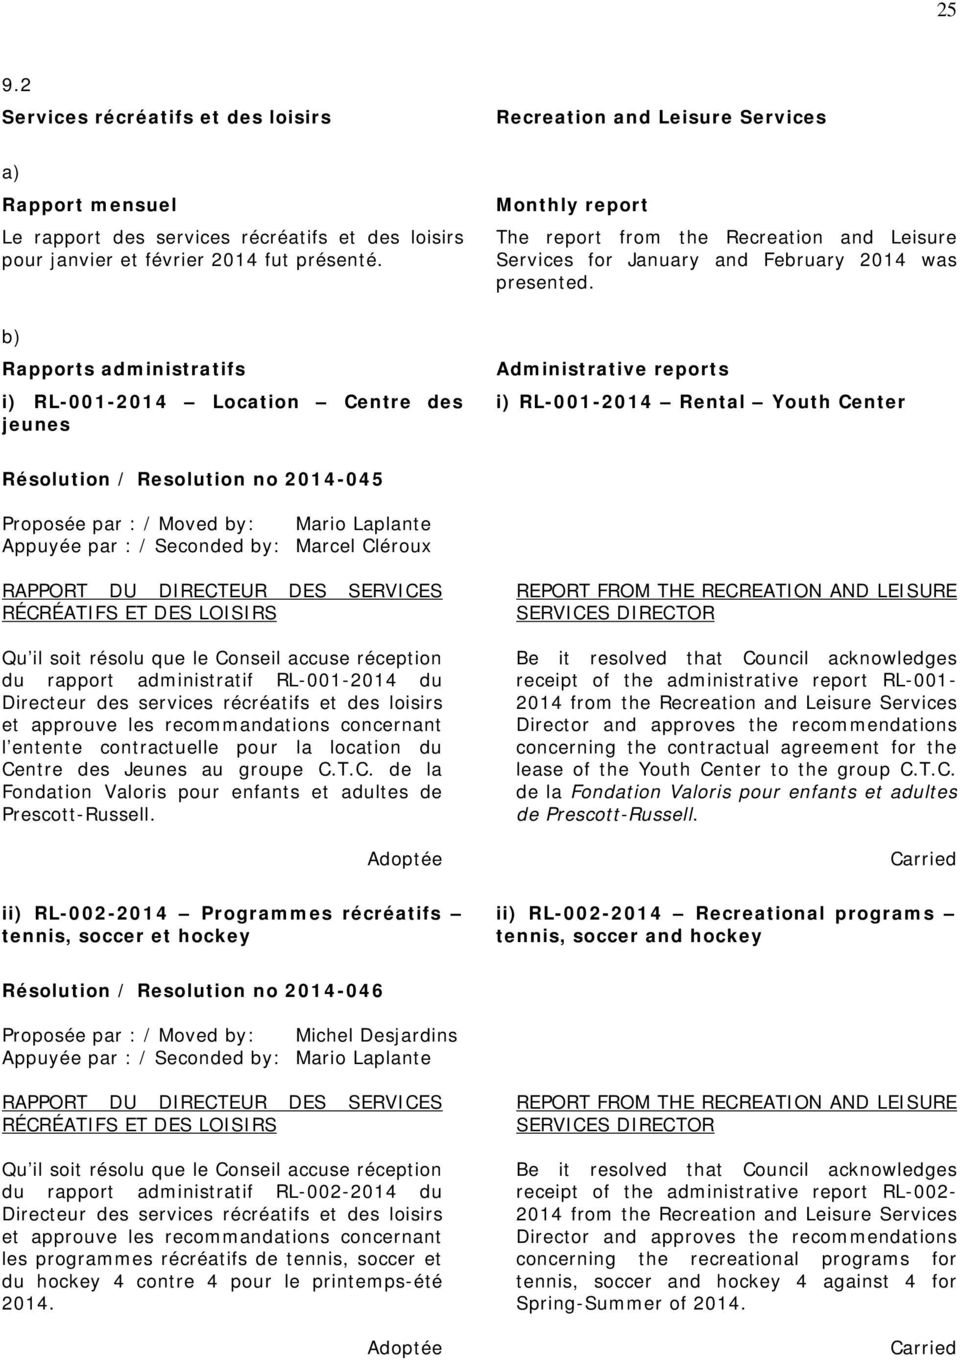 b) Rapports administratifs i) RL-001-2014 Location Centre des jeunes Administrative reports i) RL-001-2014 Rental Youth Center Résolution / Resolution no 2014-045 Proposée par : / Moved by: Mario